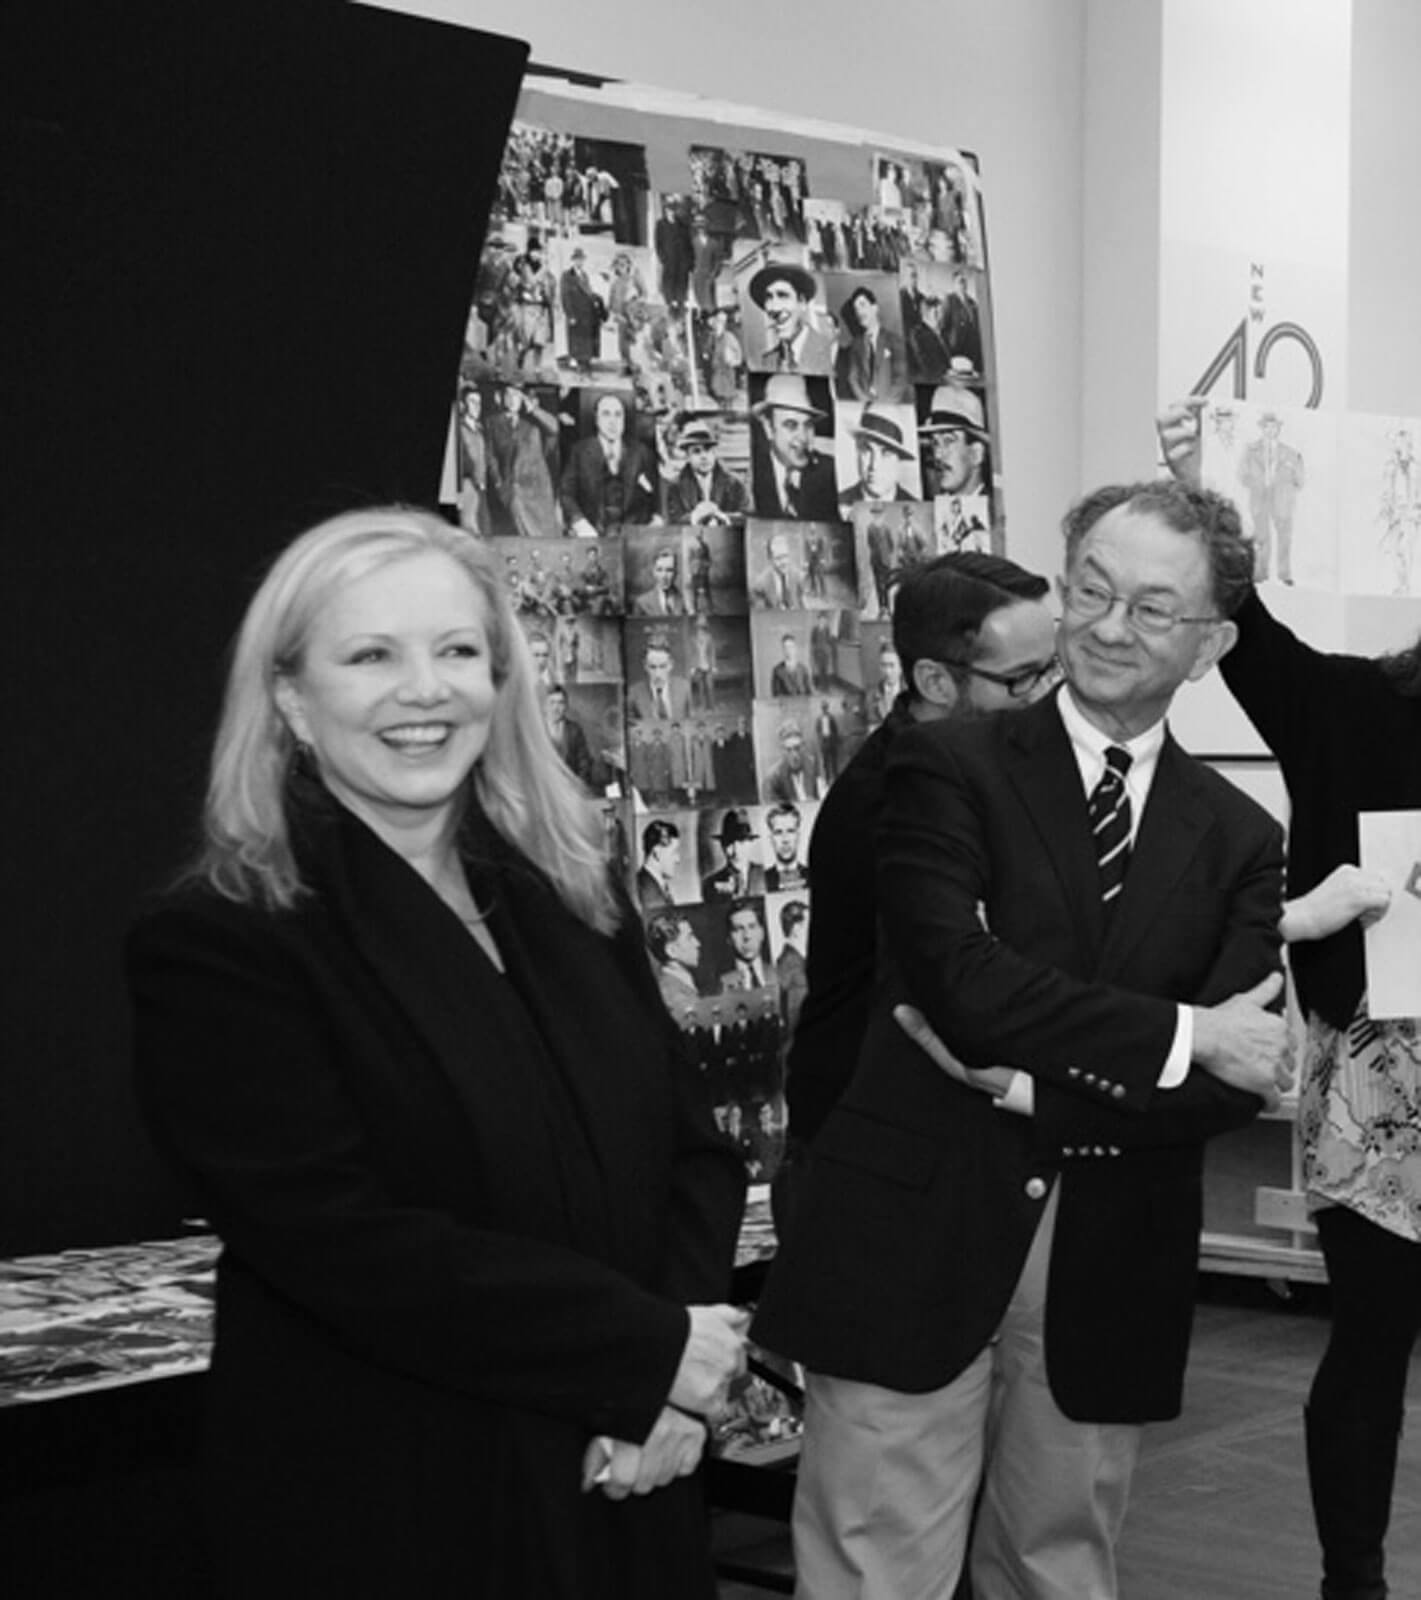 Black and white photo of Susan Stroman and costume designer William Ivey Long at a presentation for Bullets Over Broadway. Research and renderings can be seen on presentation boards.